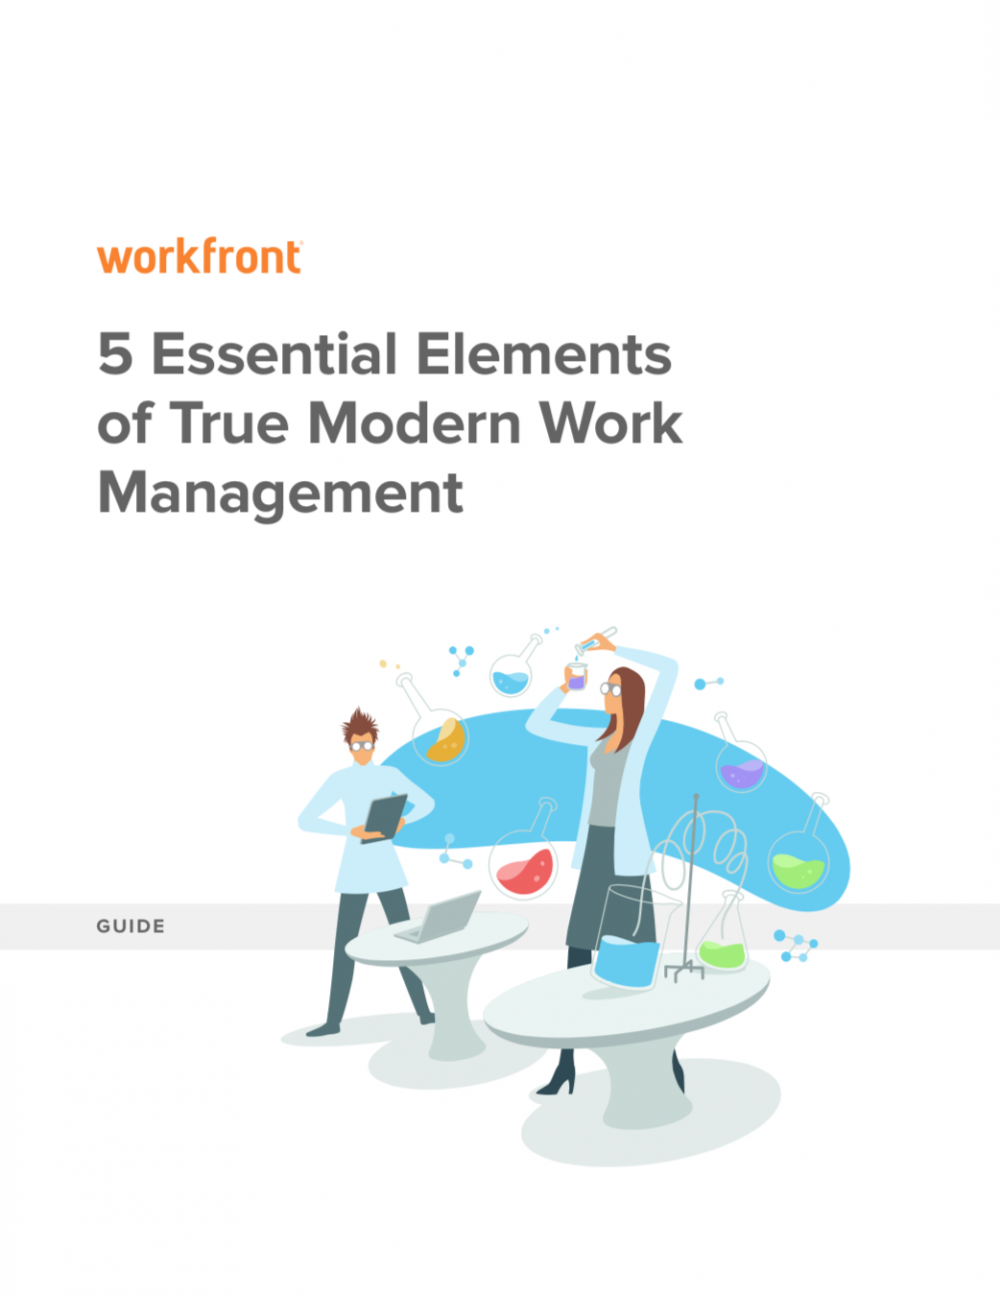 5 Essential Elements to Modern Work Management